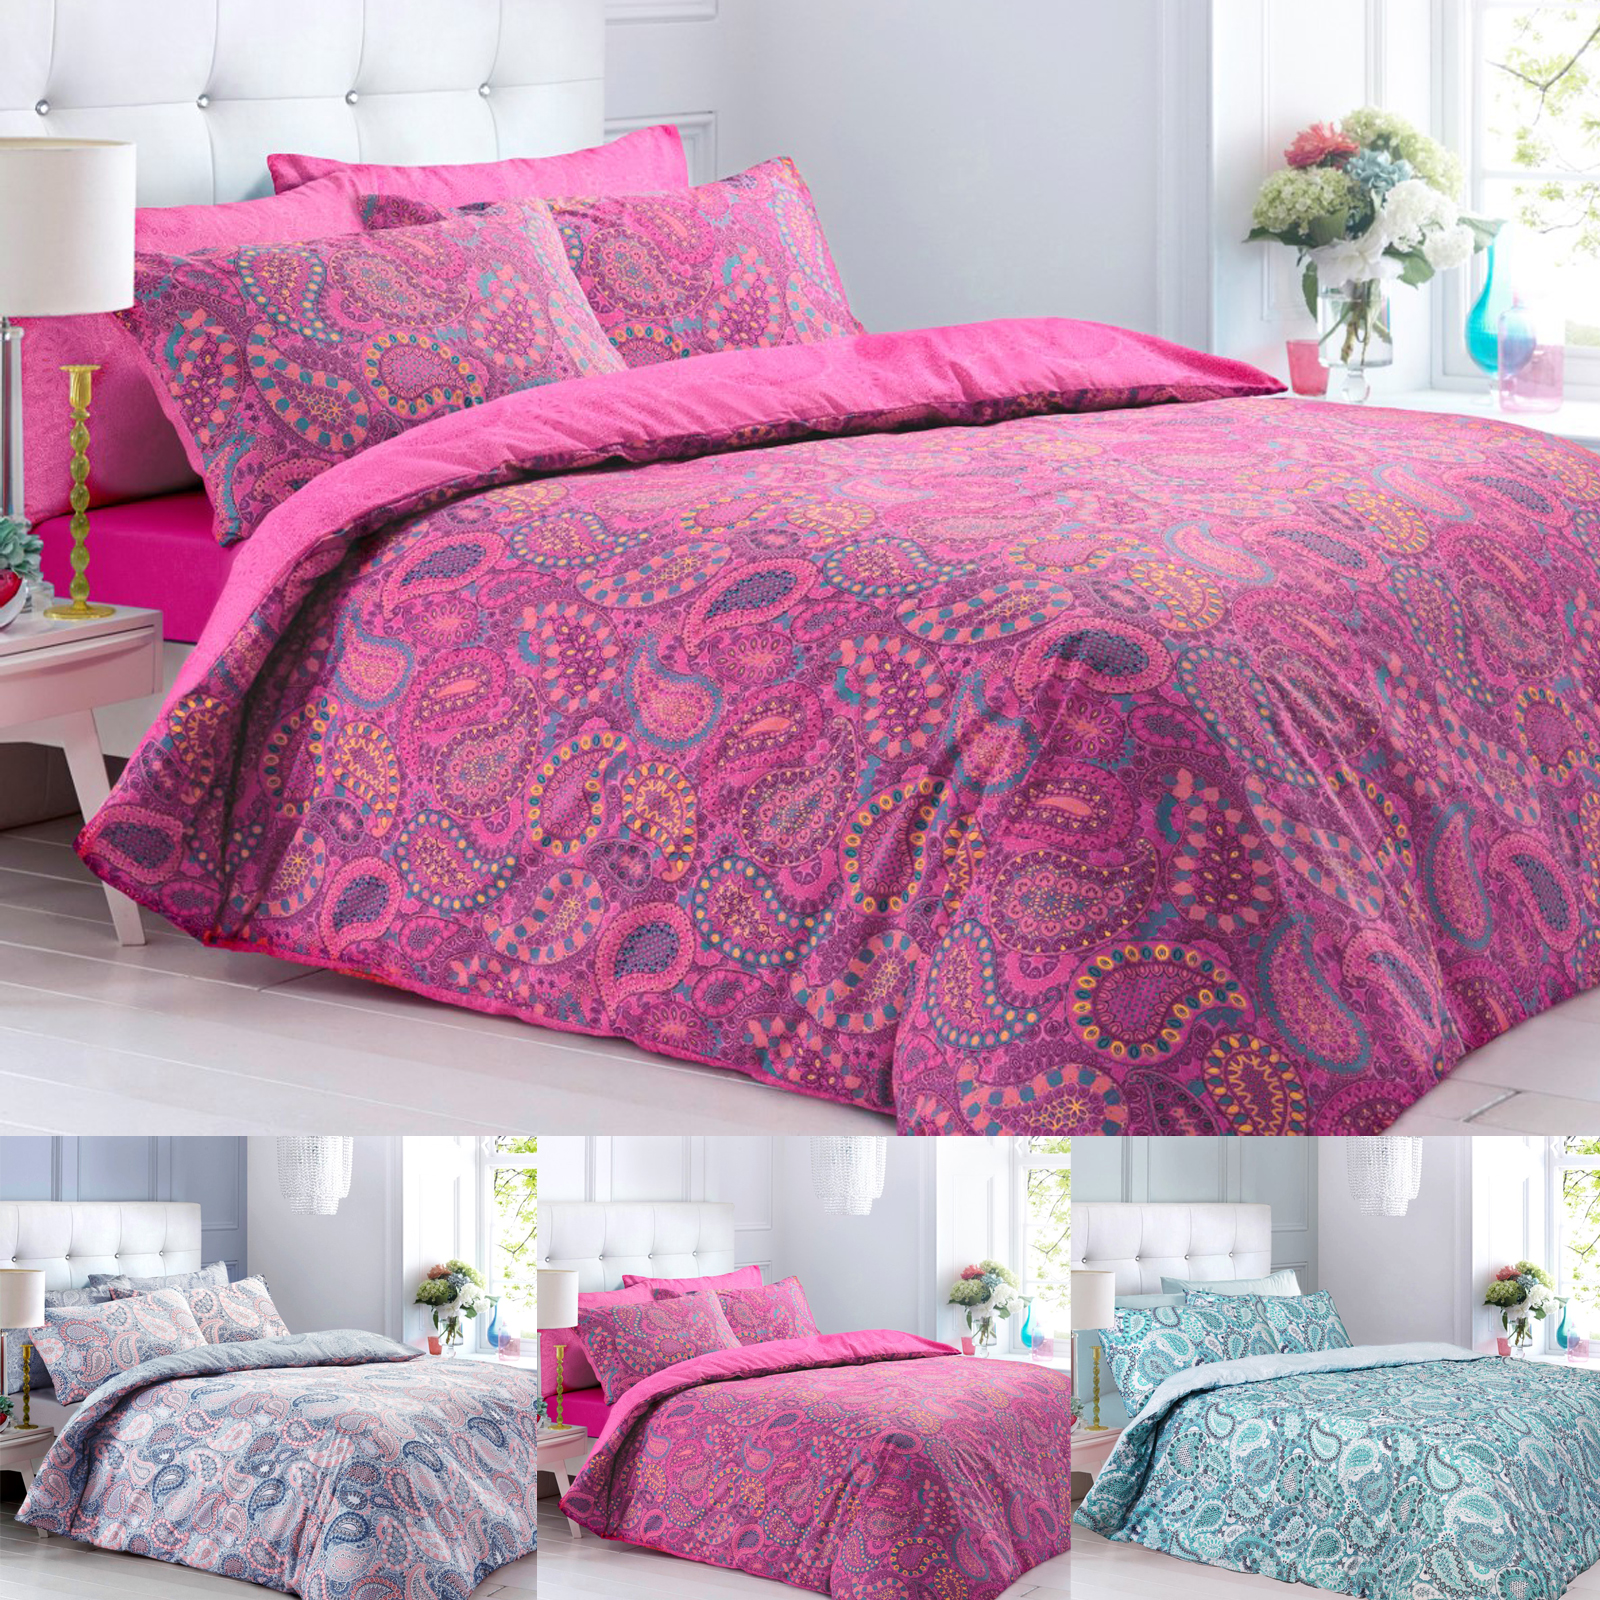 waterford duvet linens sweetgalas covers brown comforter paisley king cavanaugh bedding by cover